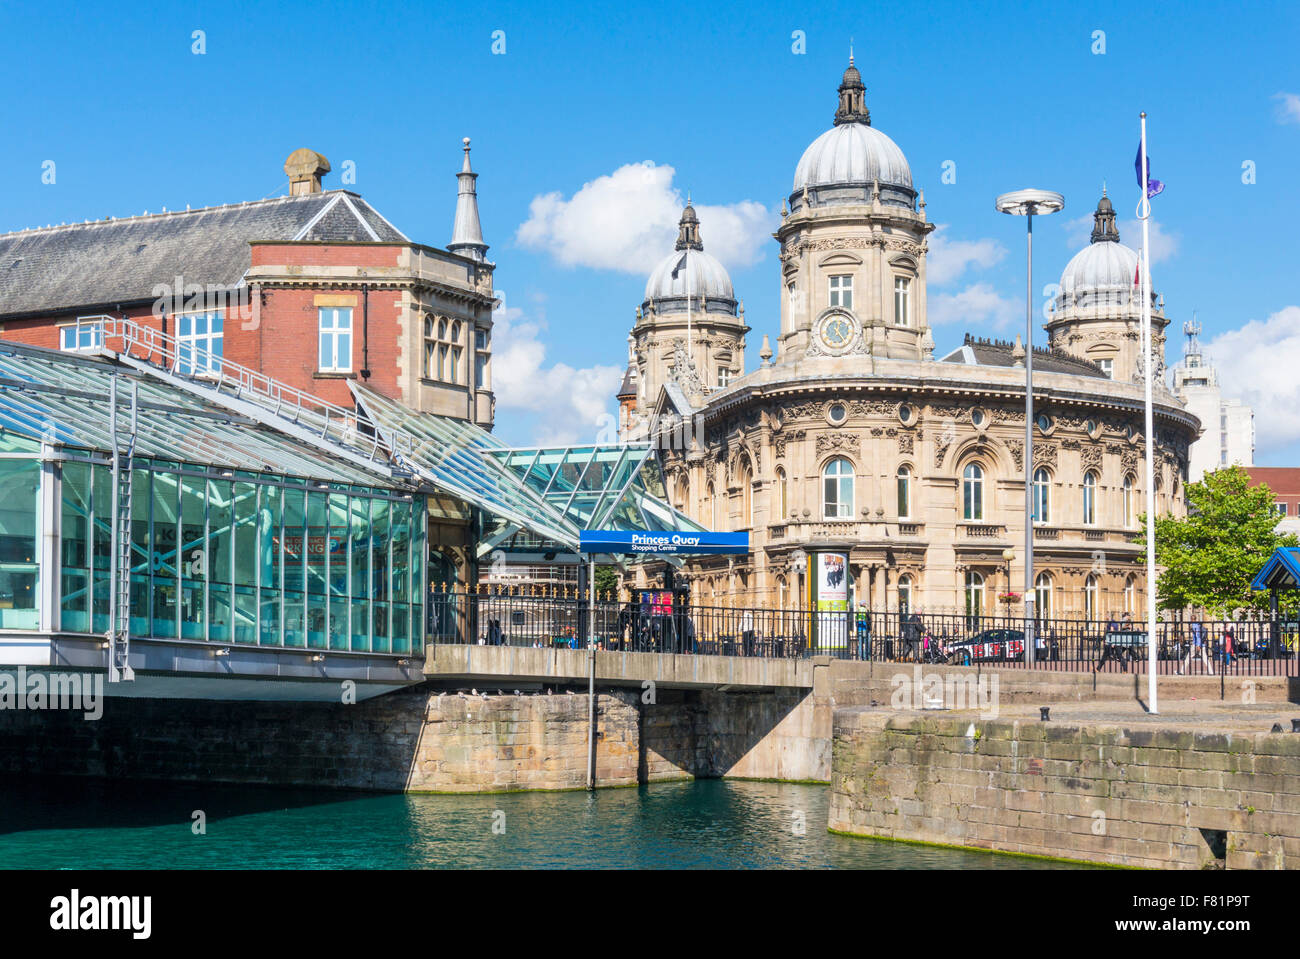 Close up view of Prince's Quay shopping centre and Maritime museum Kingston upon Hull Yorkshire England UK GB - Stock Image